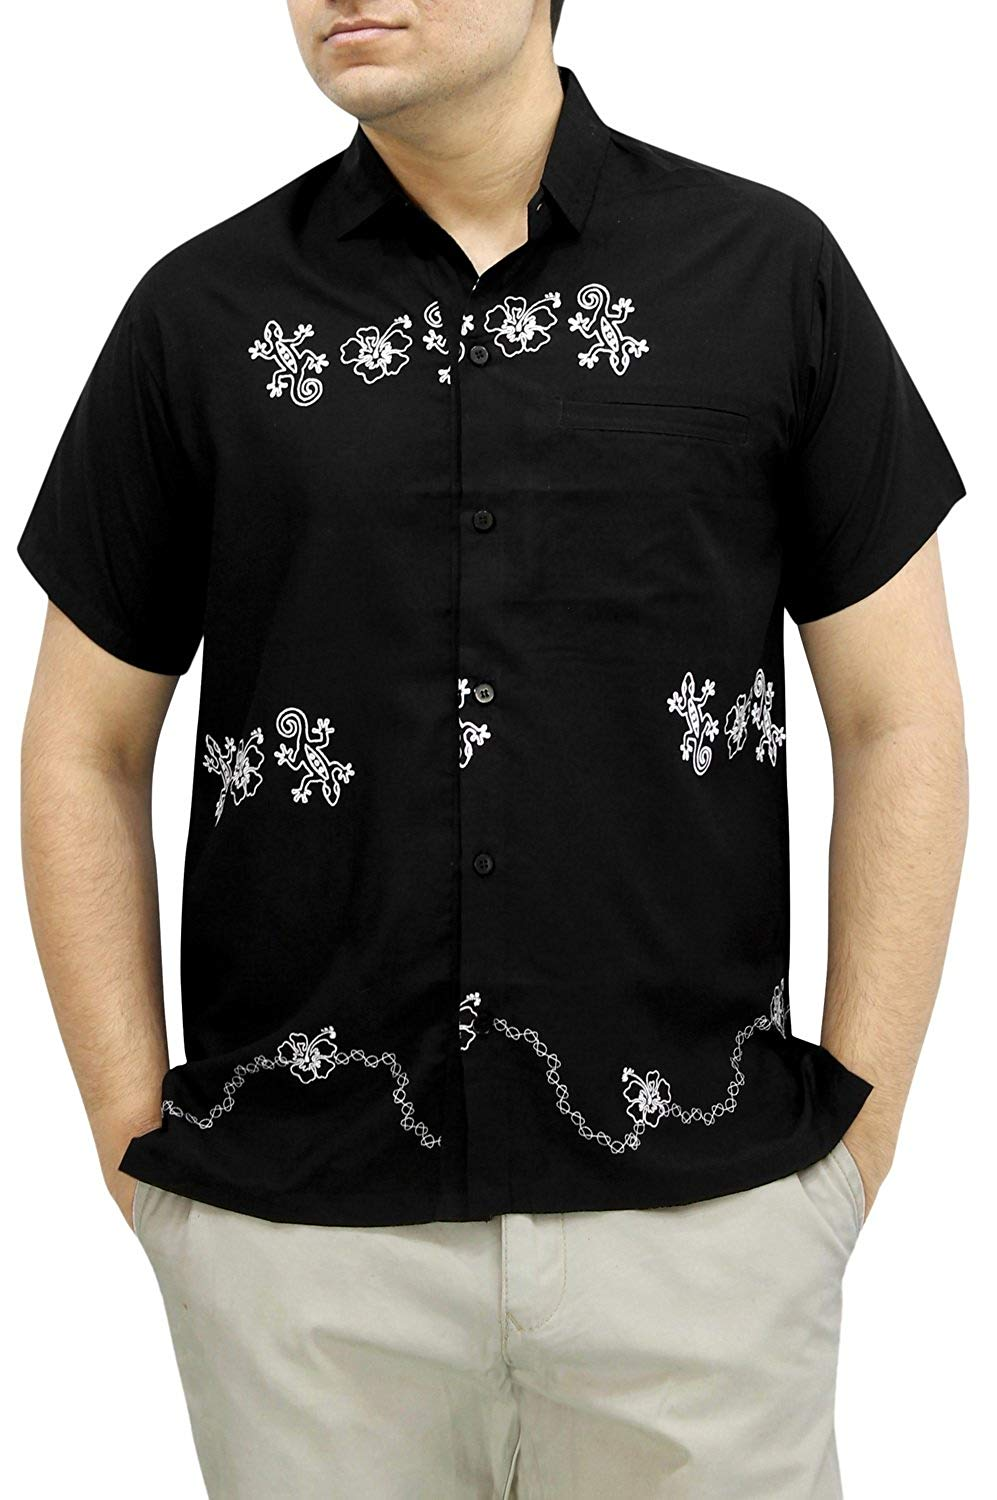 04cce73043180 ... Load image into Gallery viewer, LA LEELA Shirt Casual Button Down Short  Sleeve Beach Shirt ...